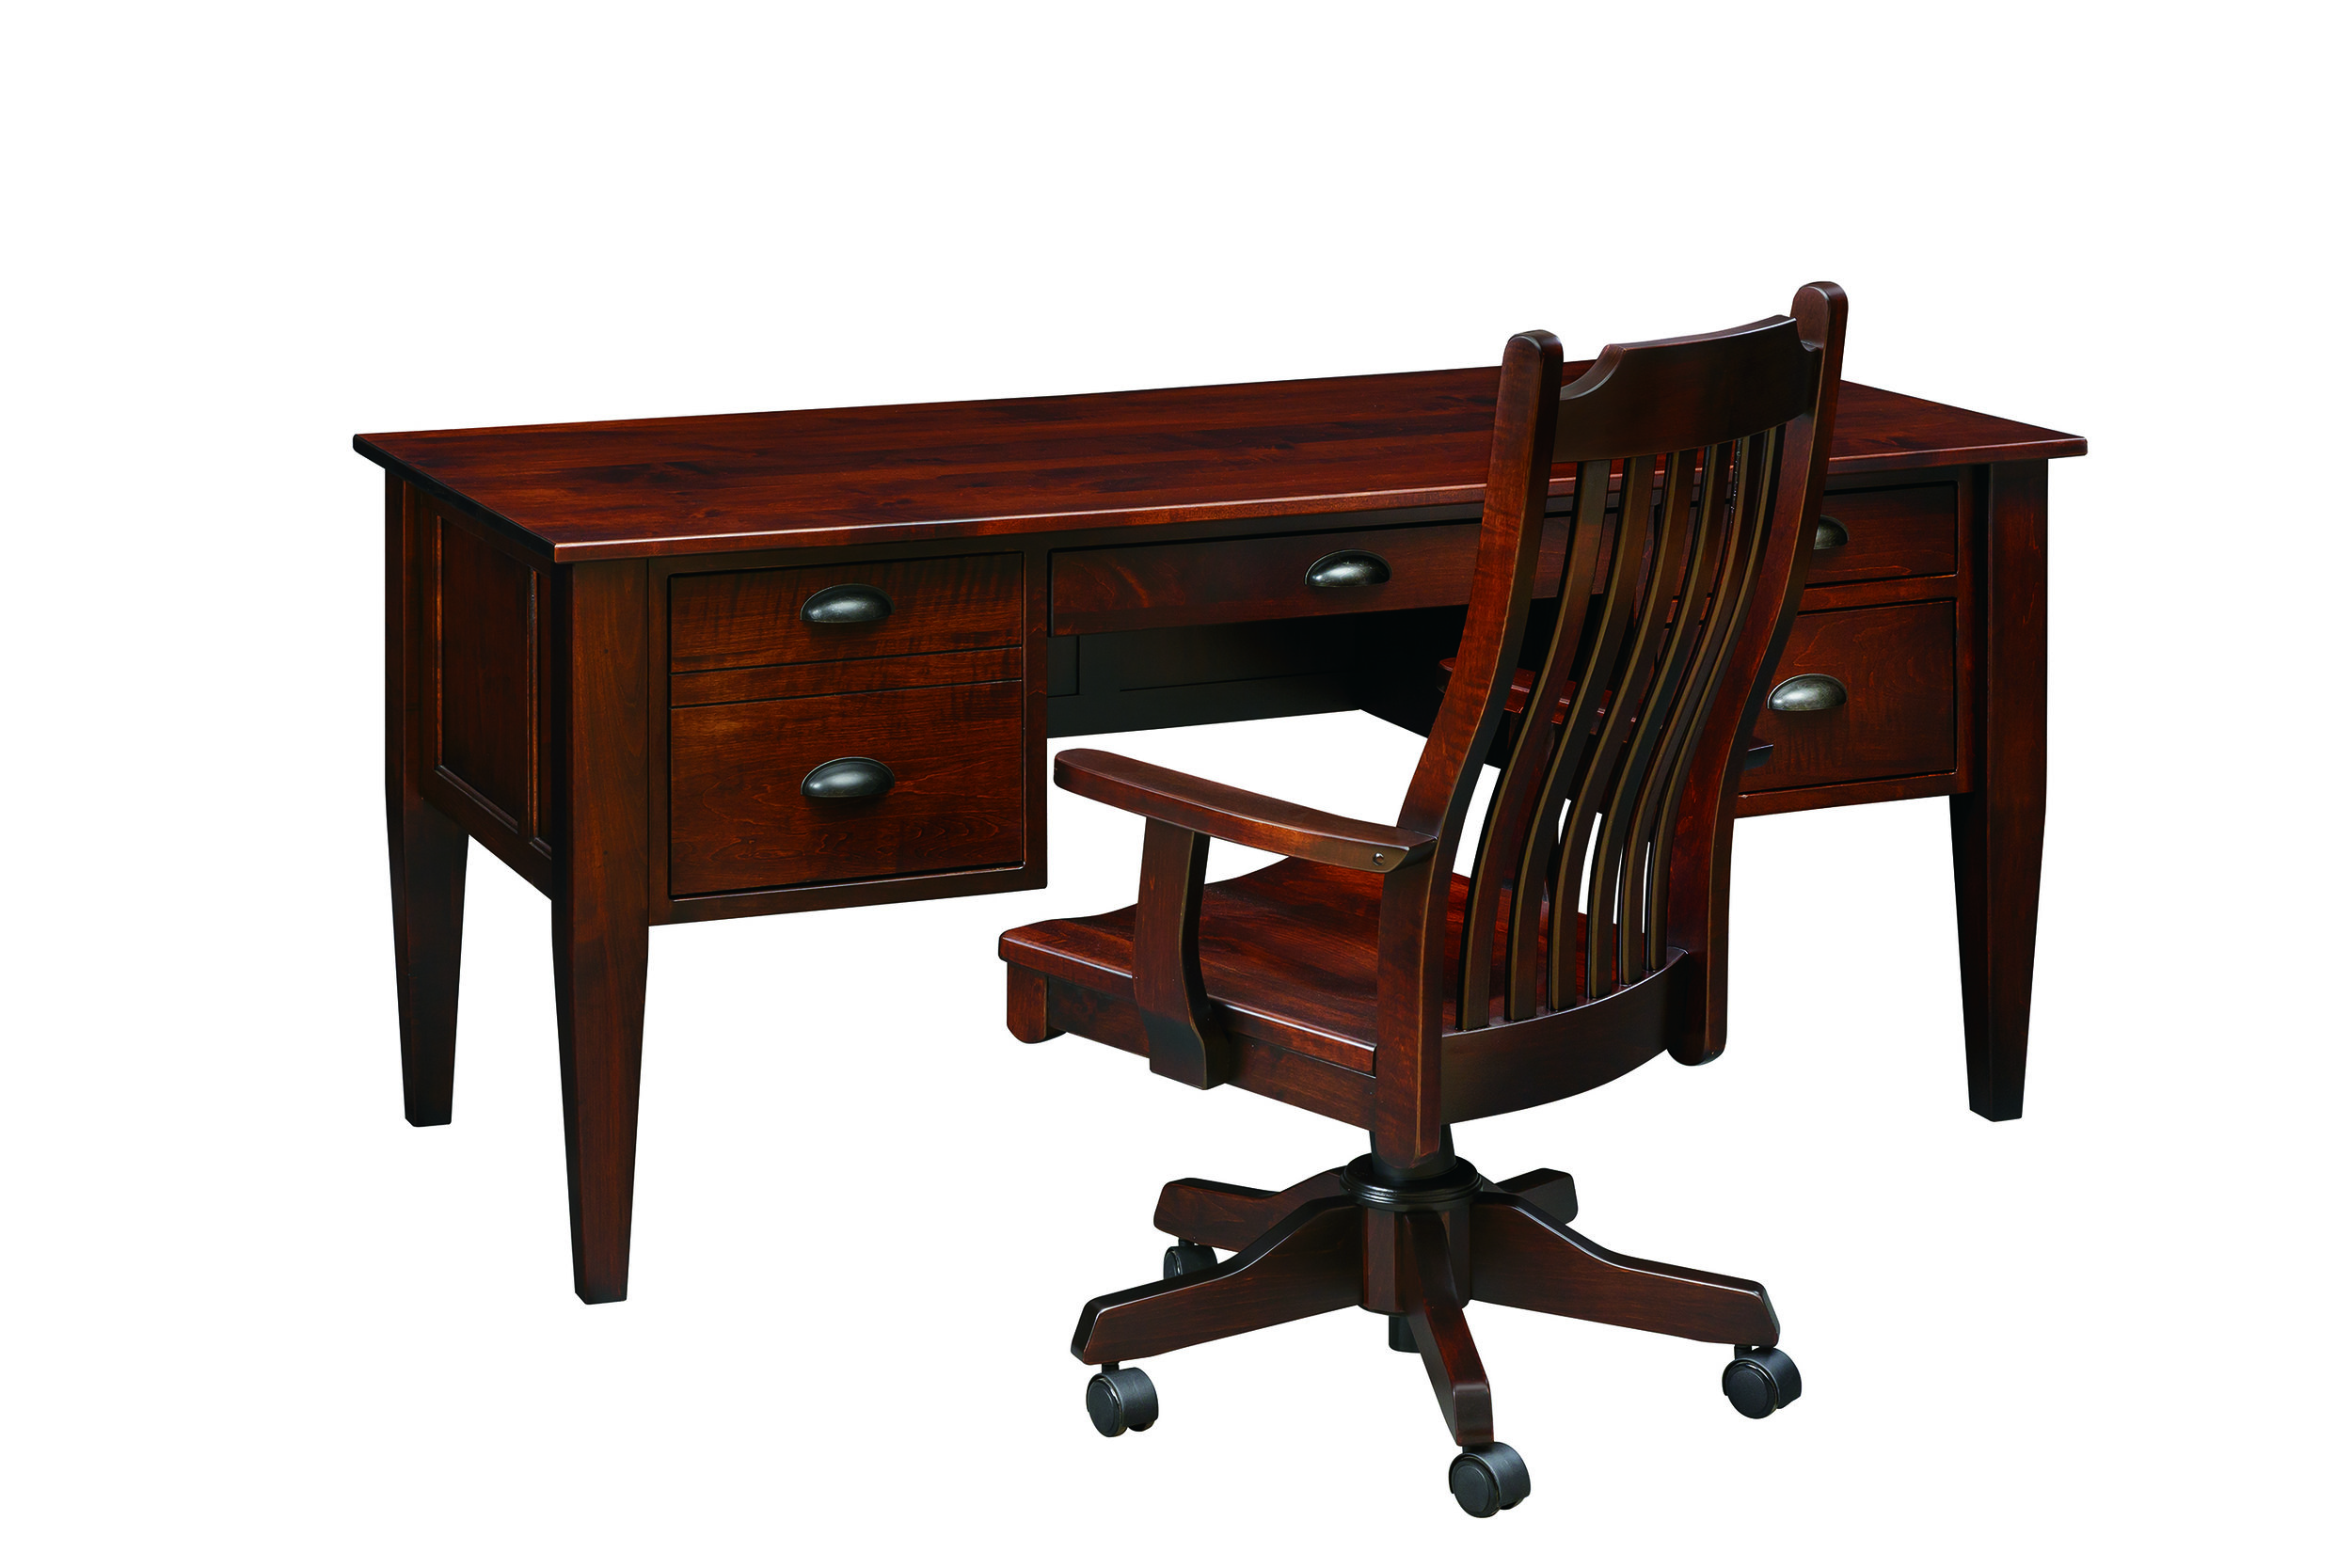 181_ExecutiveDeskWith_135Chair.jpg